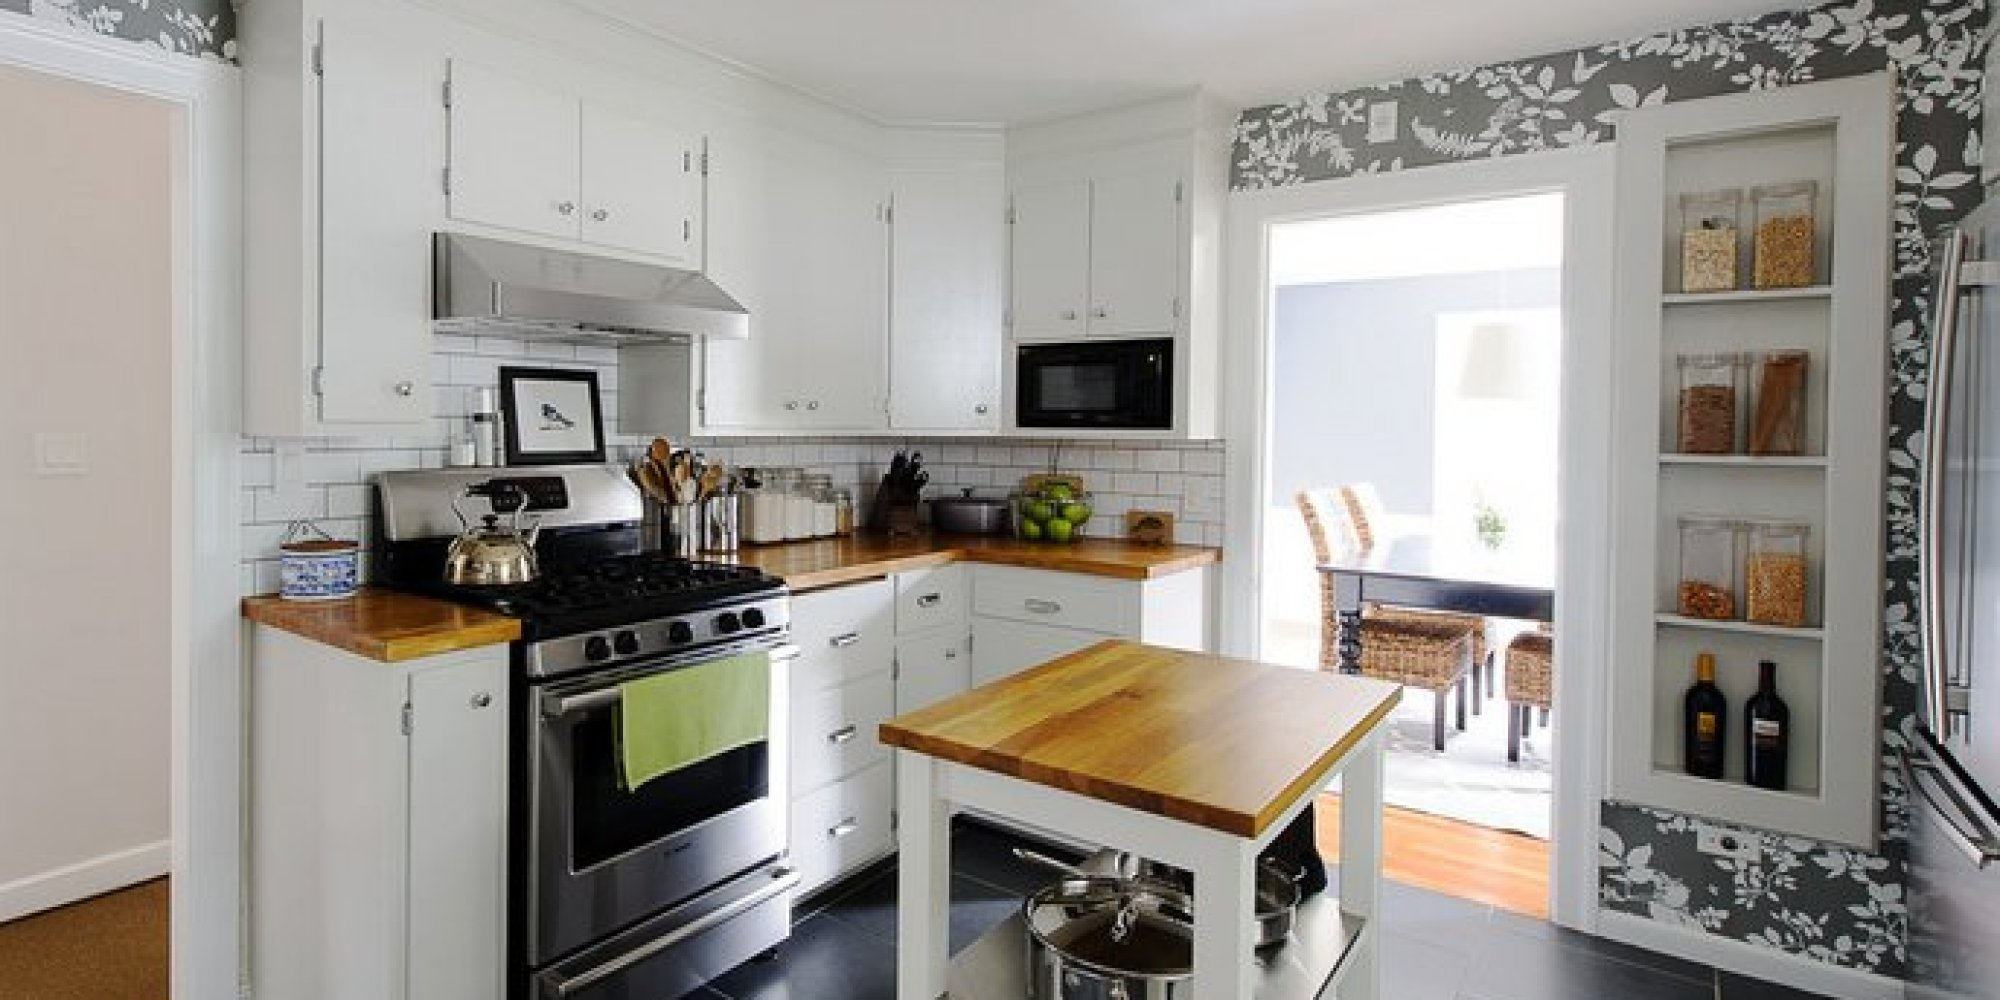 19 inexpensive ways to fix up your kitchen photos huffpost